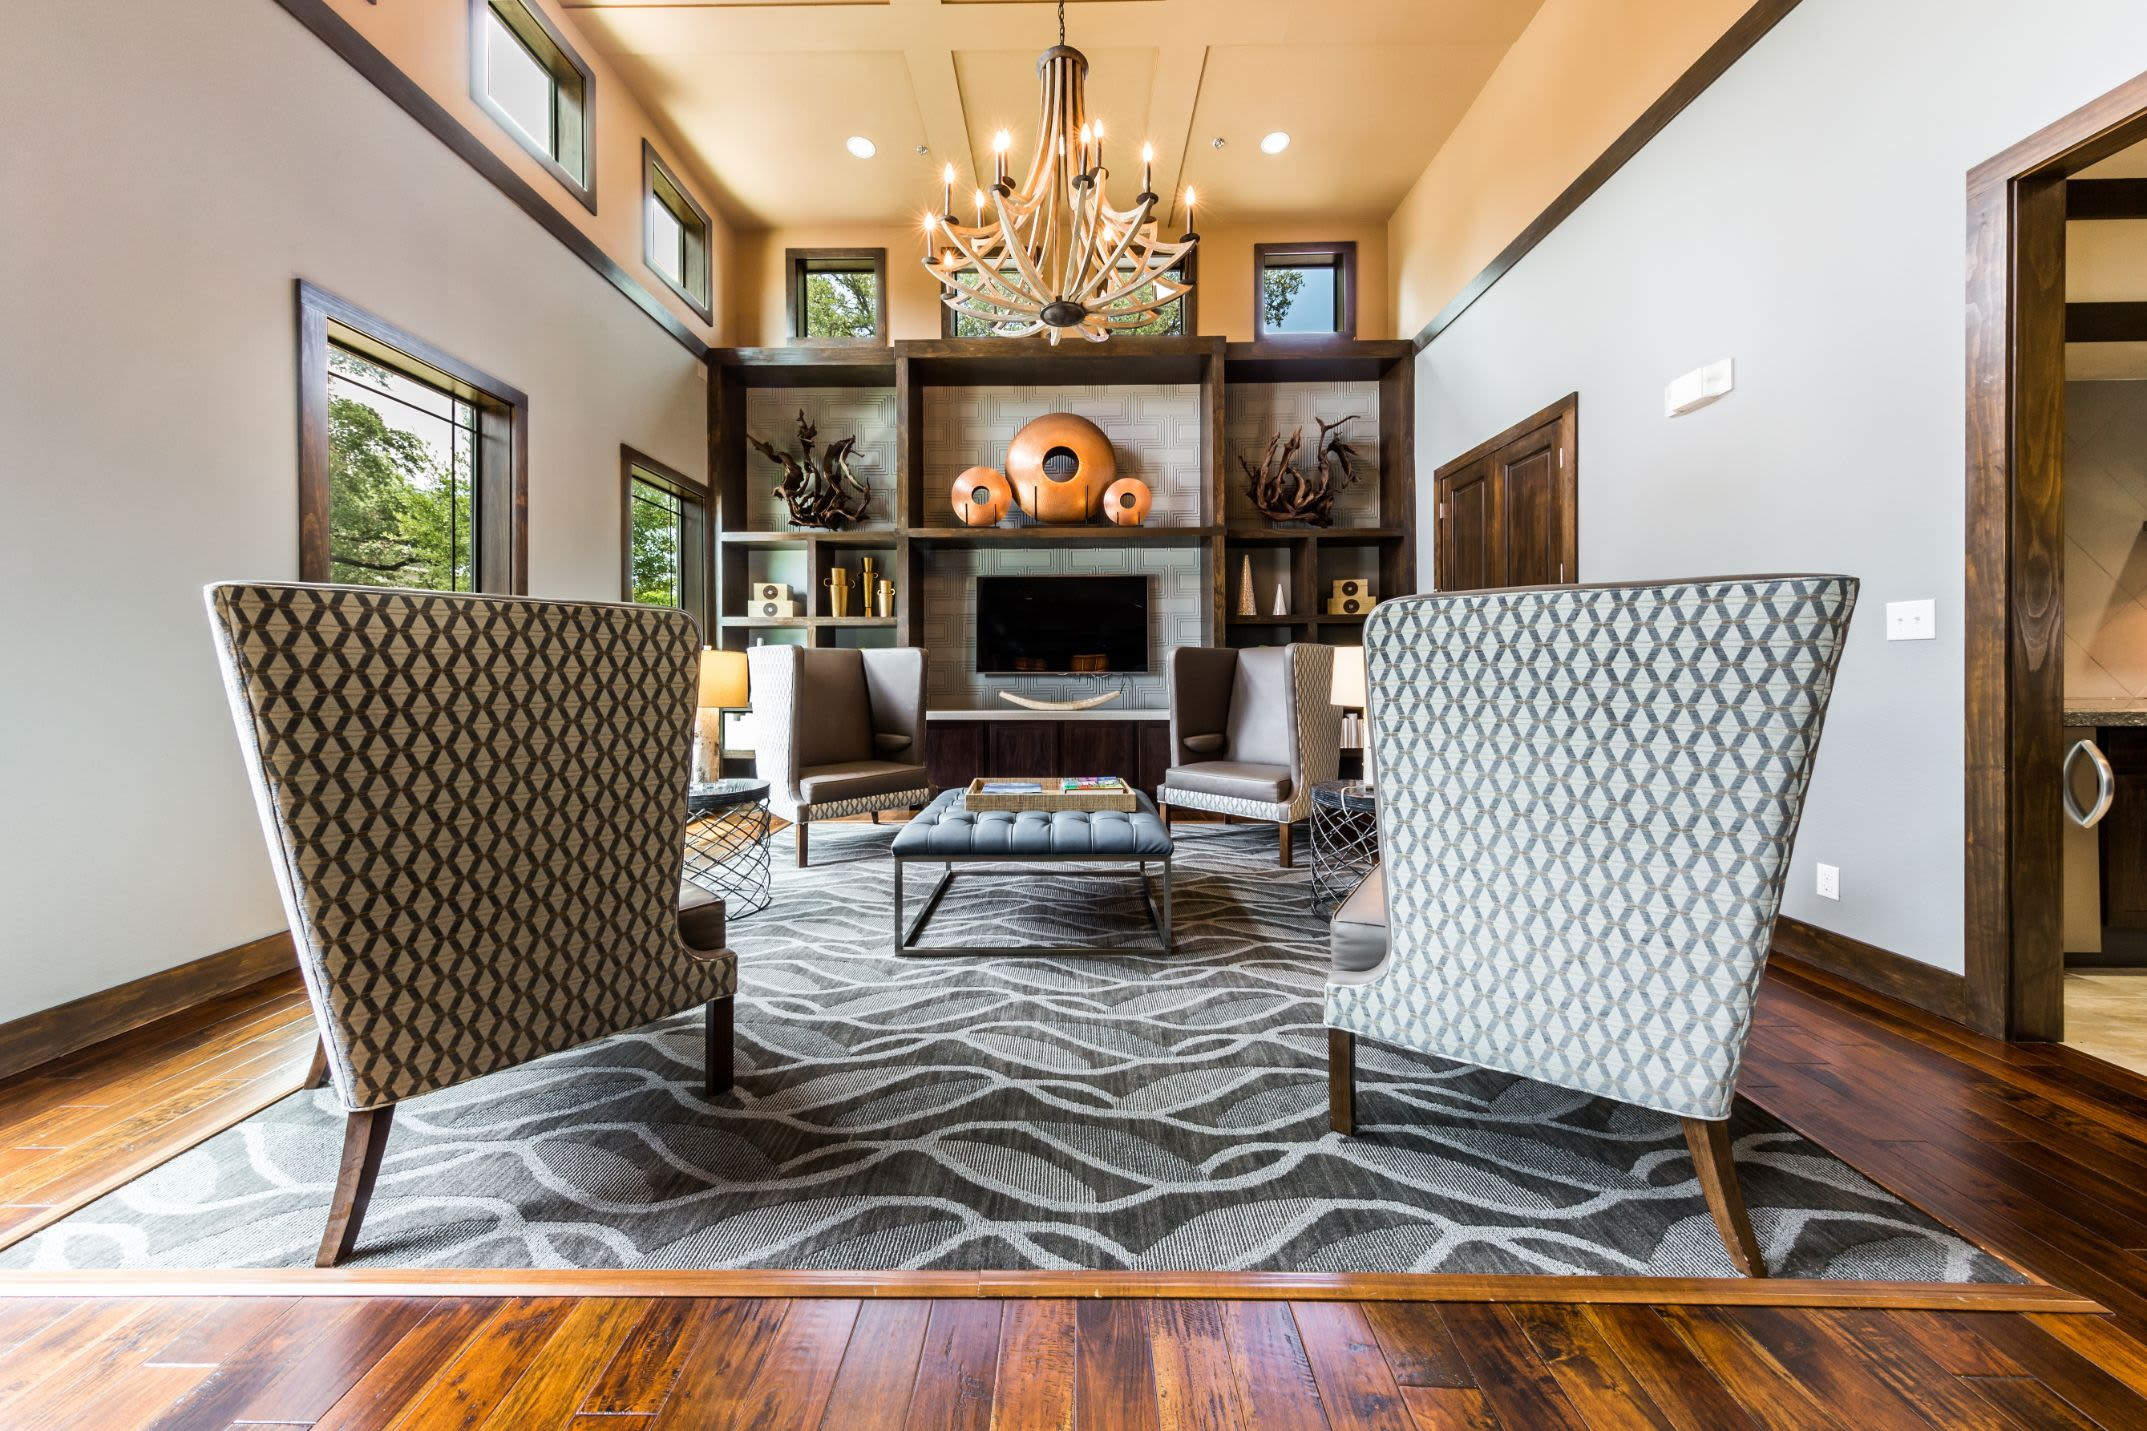 Sitting area with a large rug and a fireplace at Marquis on Lakeline in Cedar Park, Texas